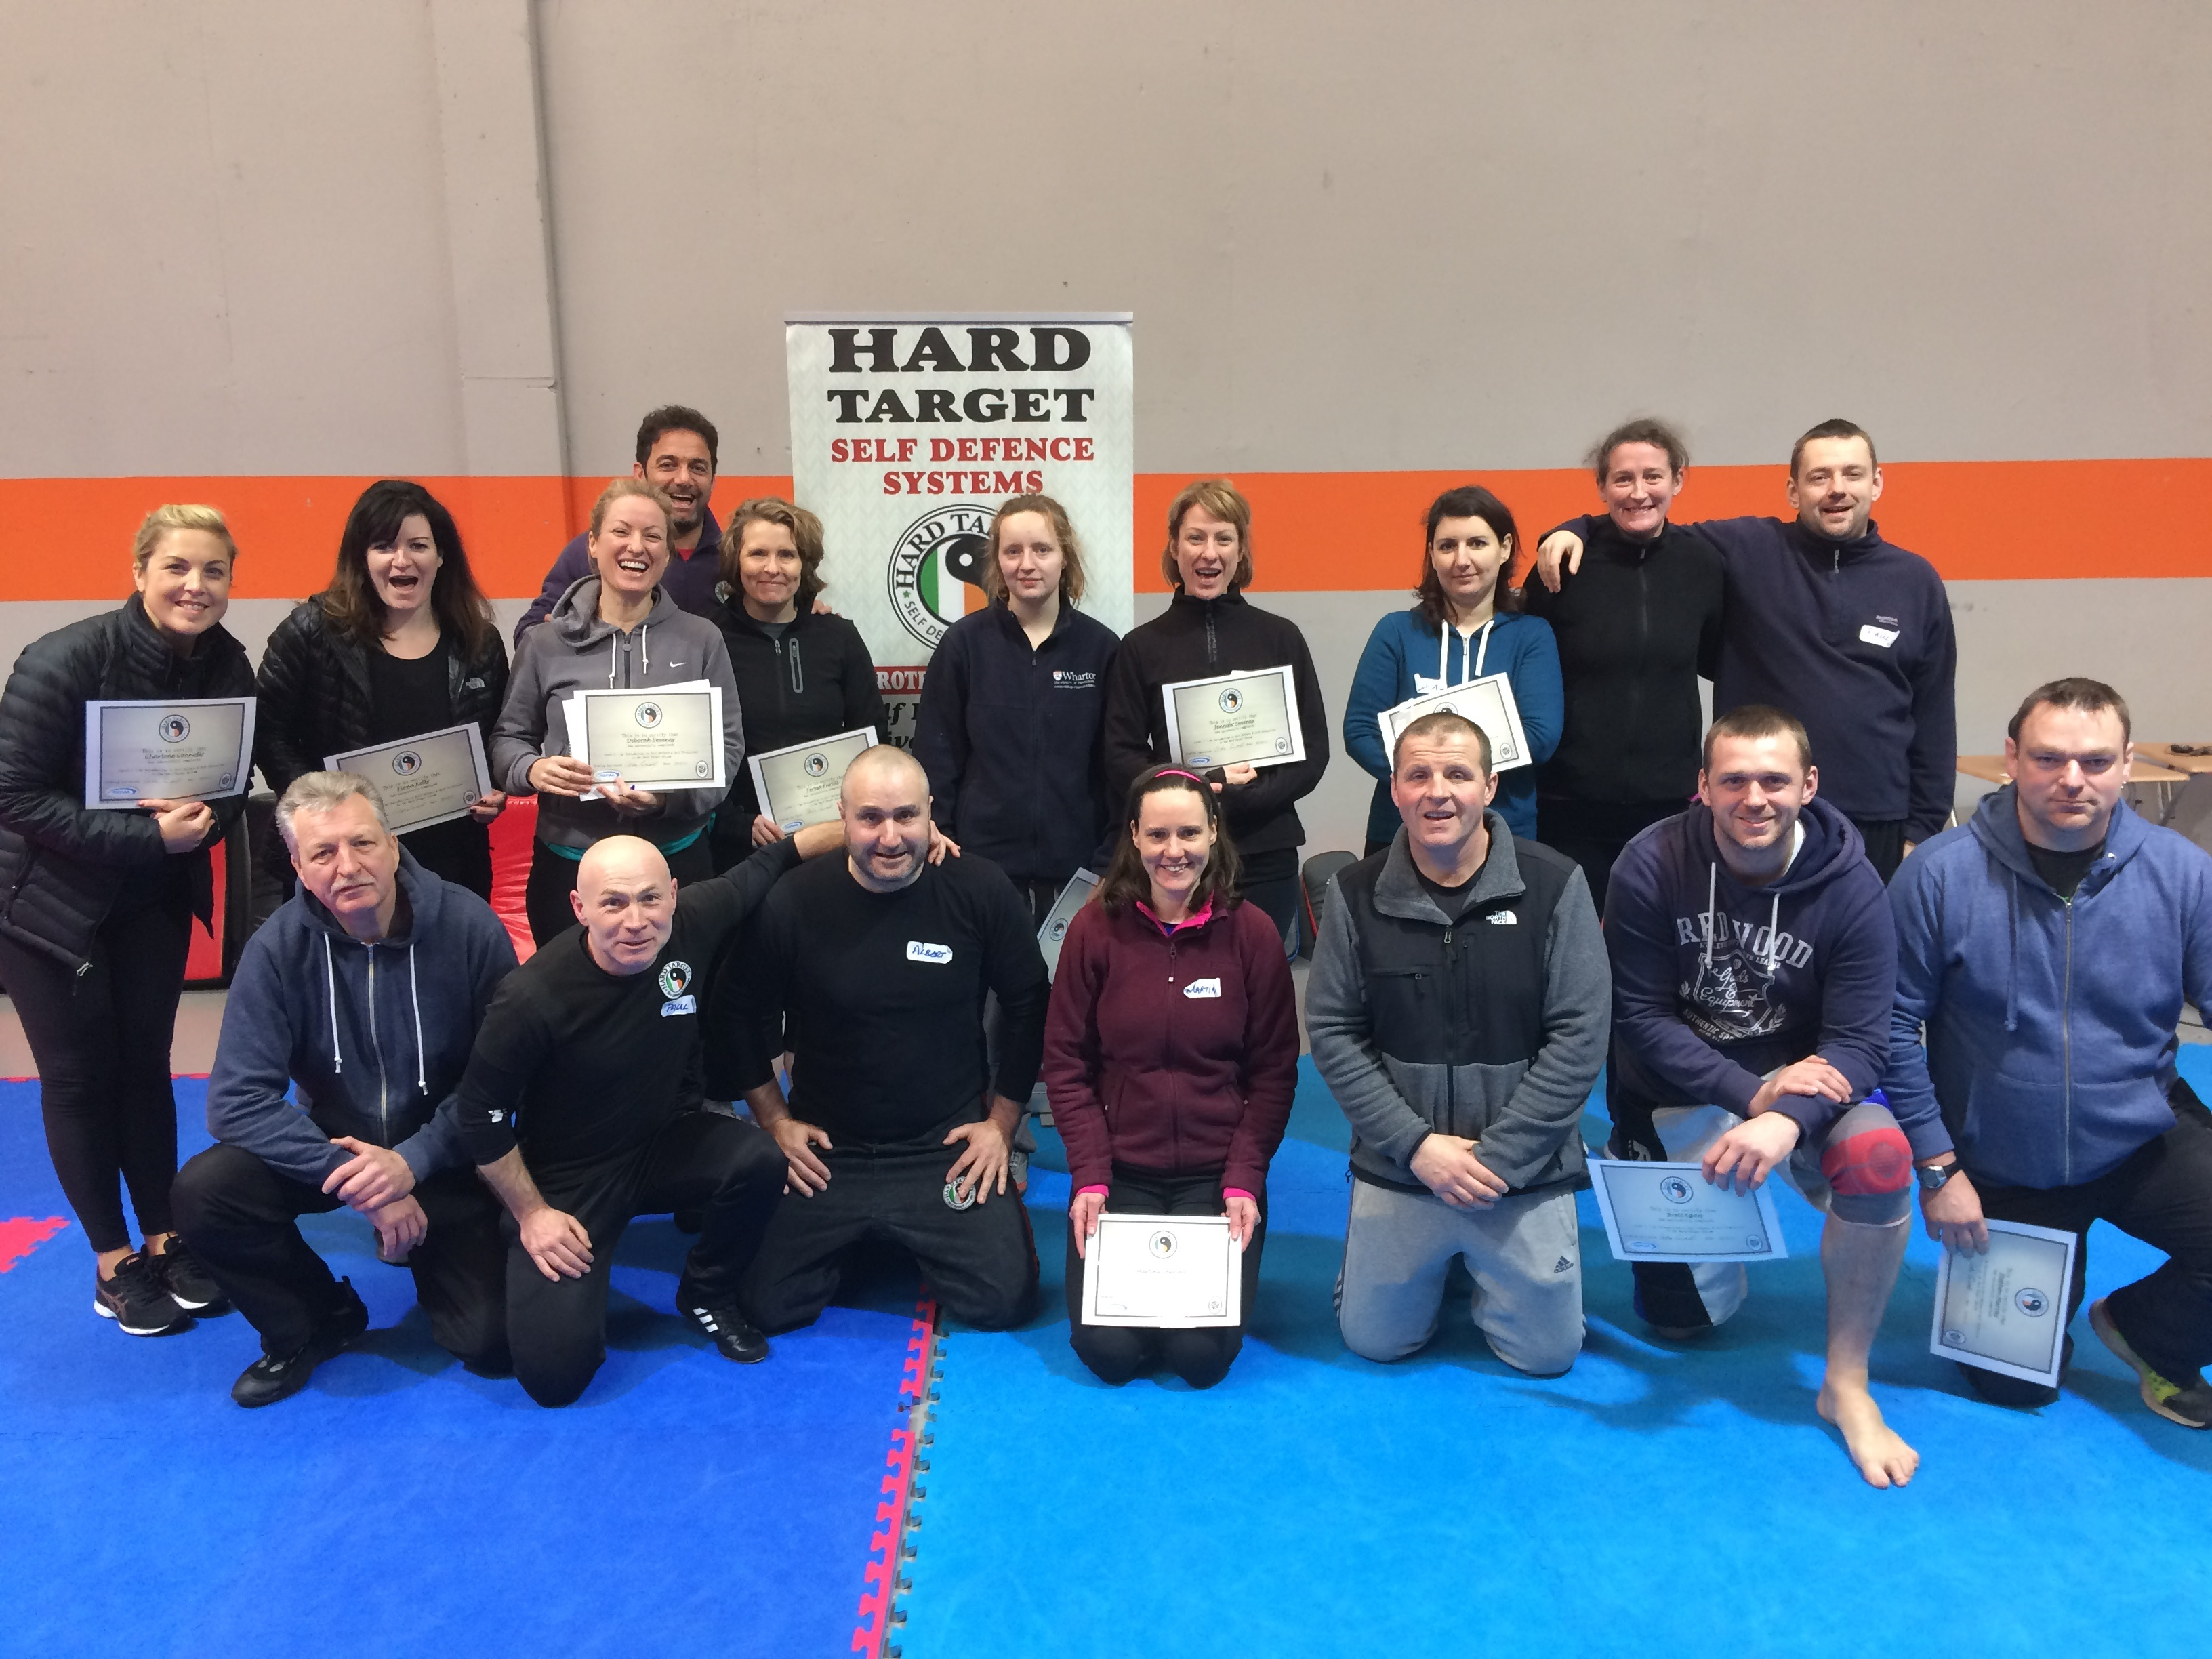 2019 June 29th & 30th - Masterclass in Self Protection & Self Defence  (Weekend Seminar)